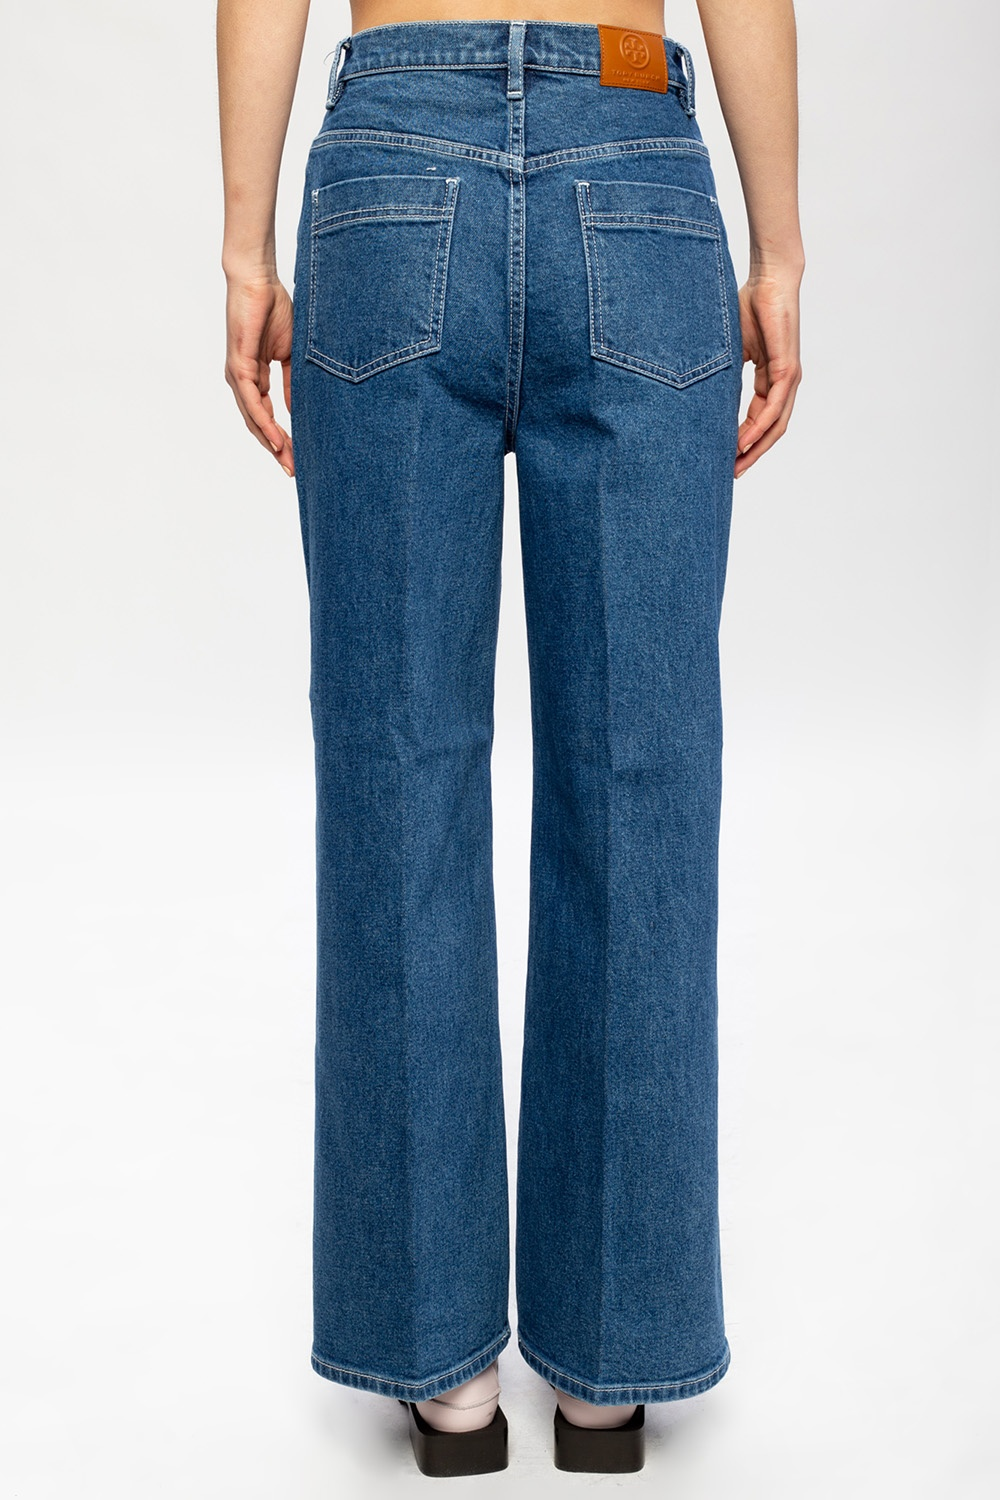 Tory Burch Jeans with logo